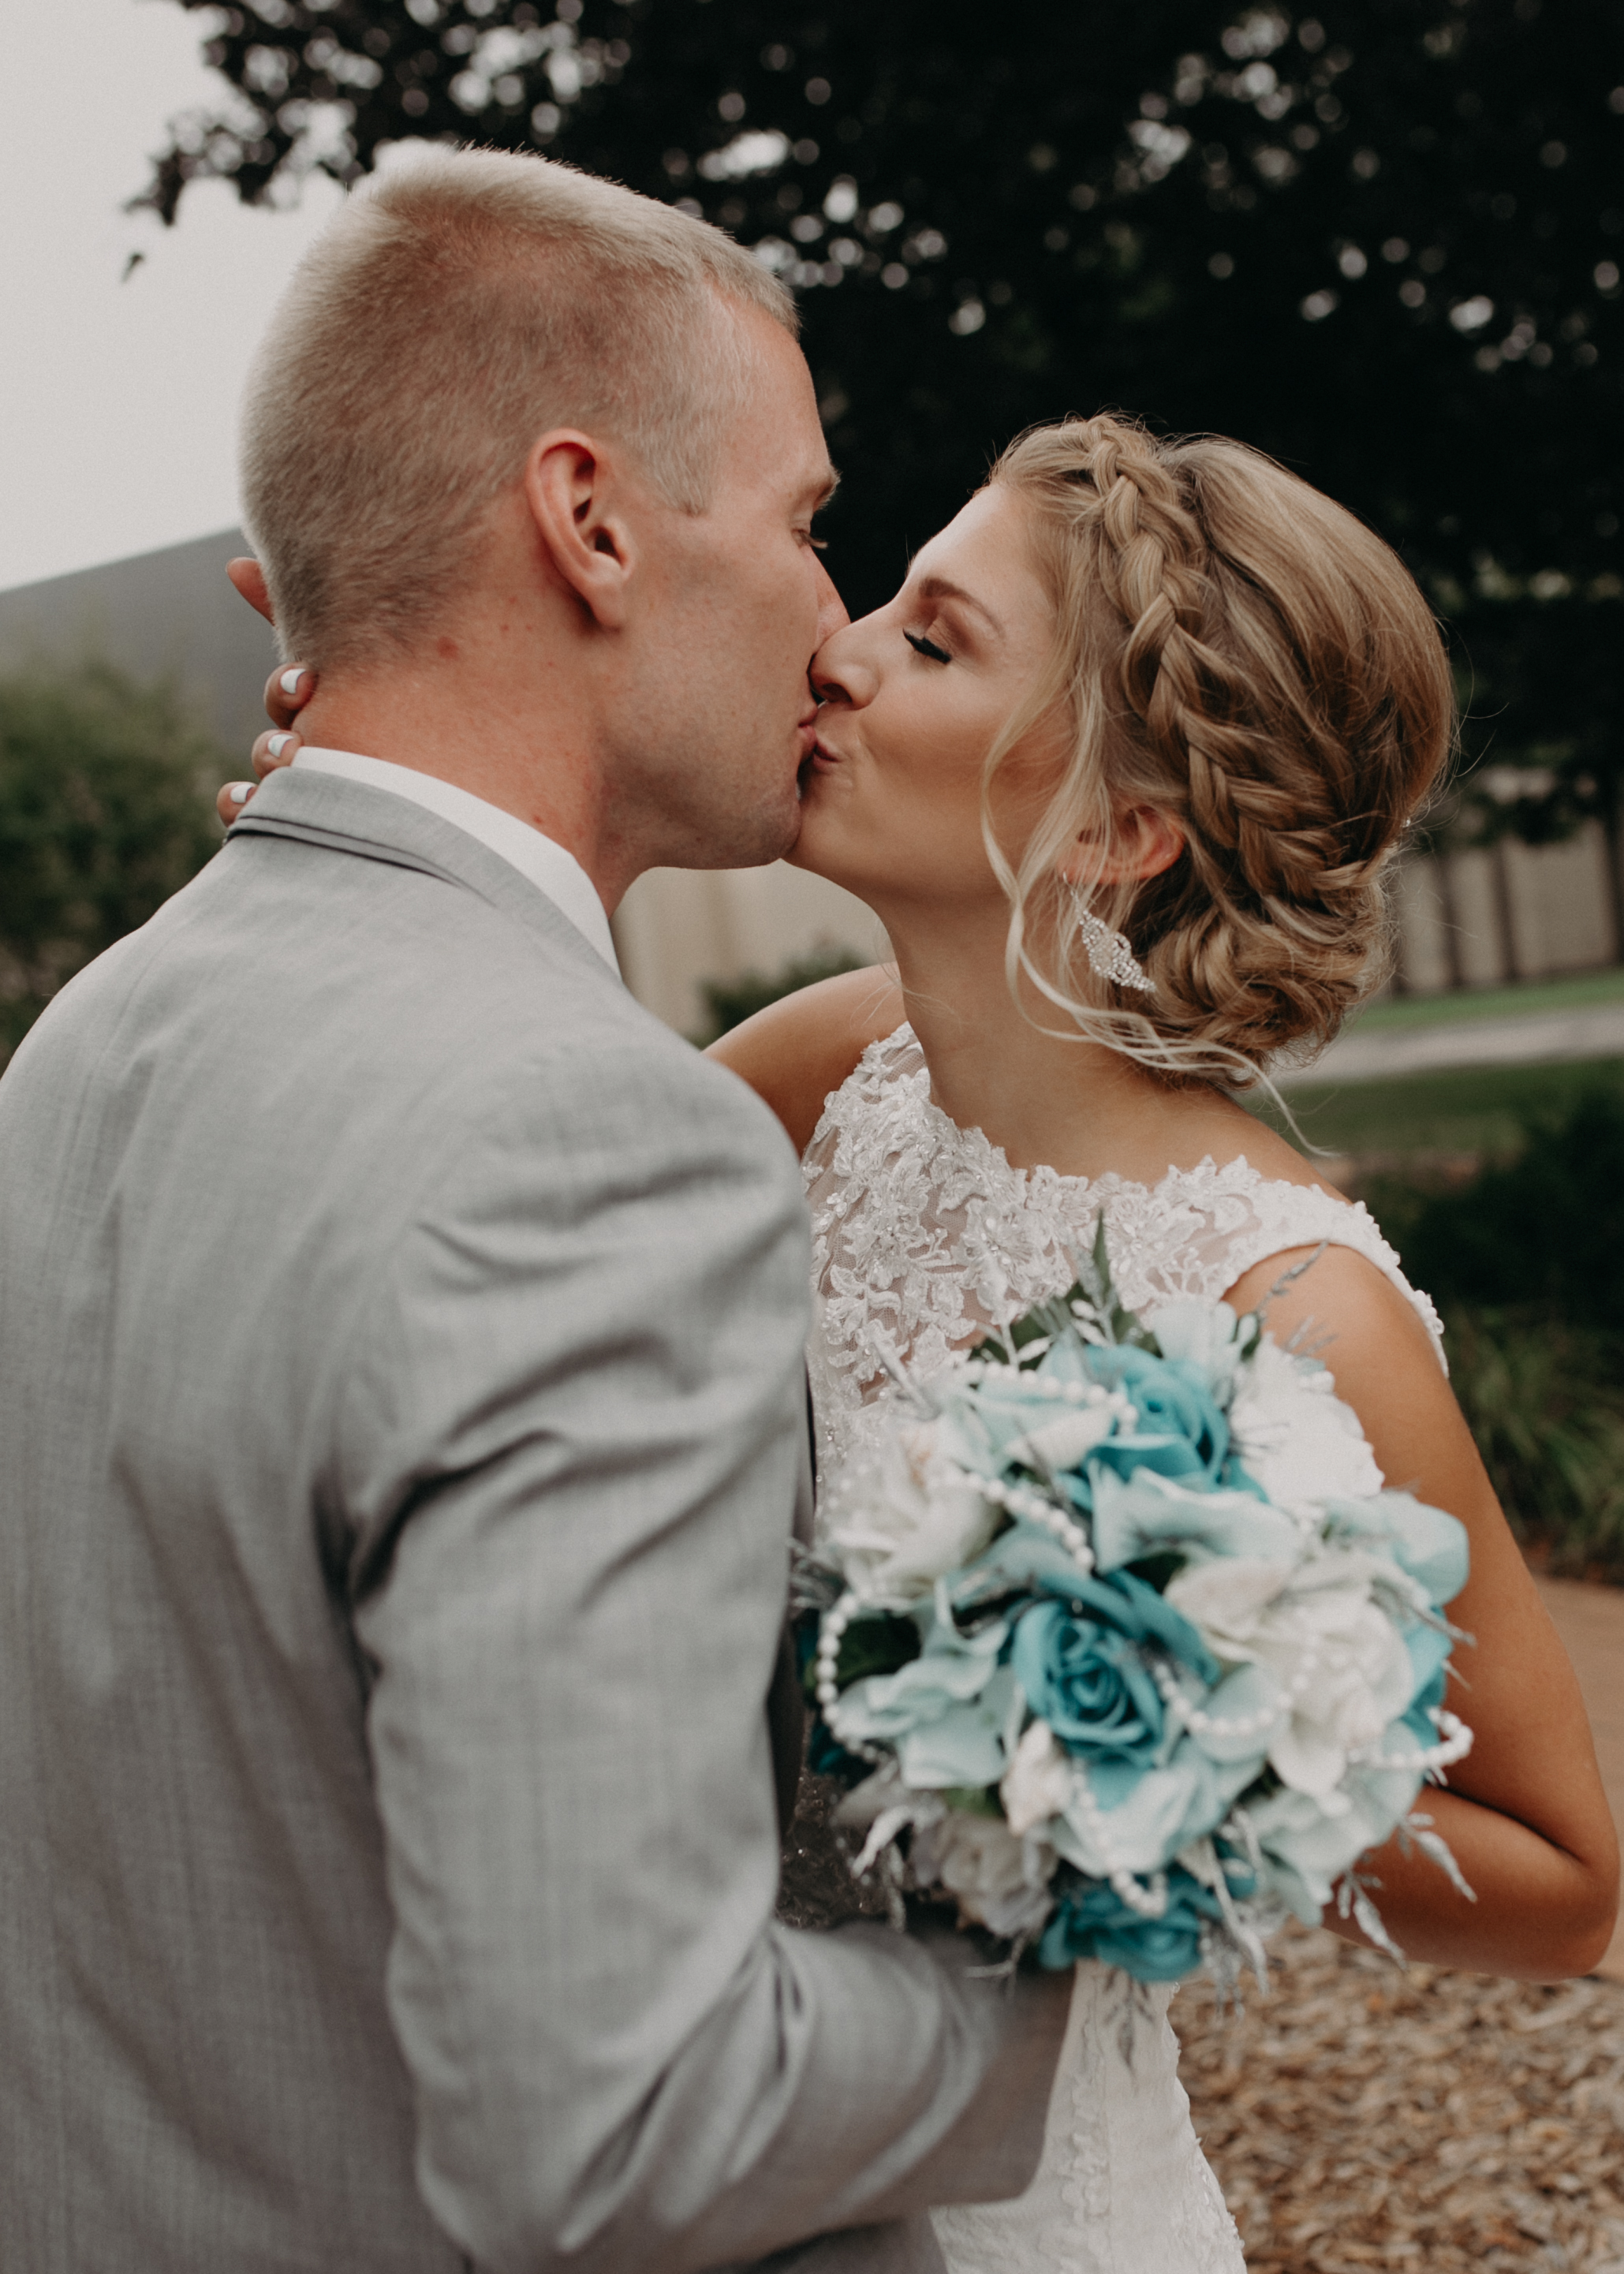 Marshfield WI wedding photographer captures first look kiss by bride and groom